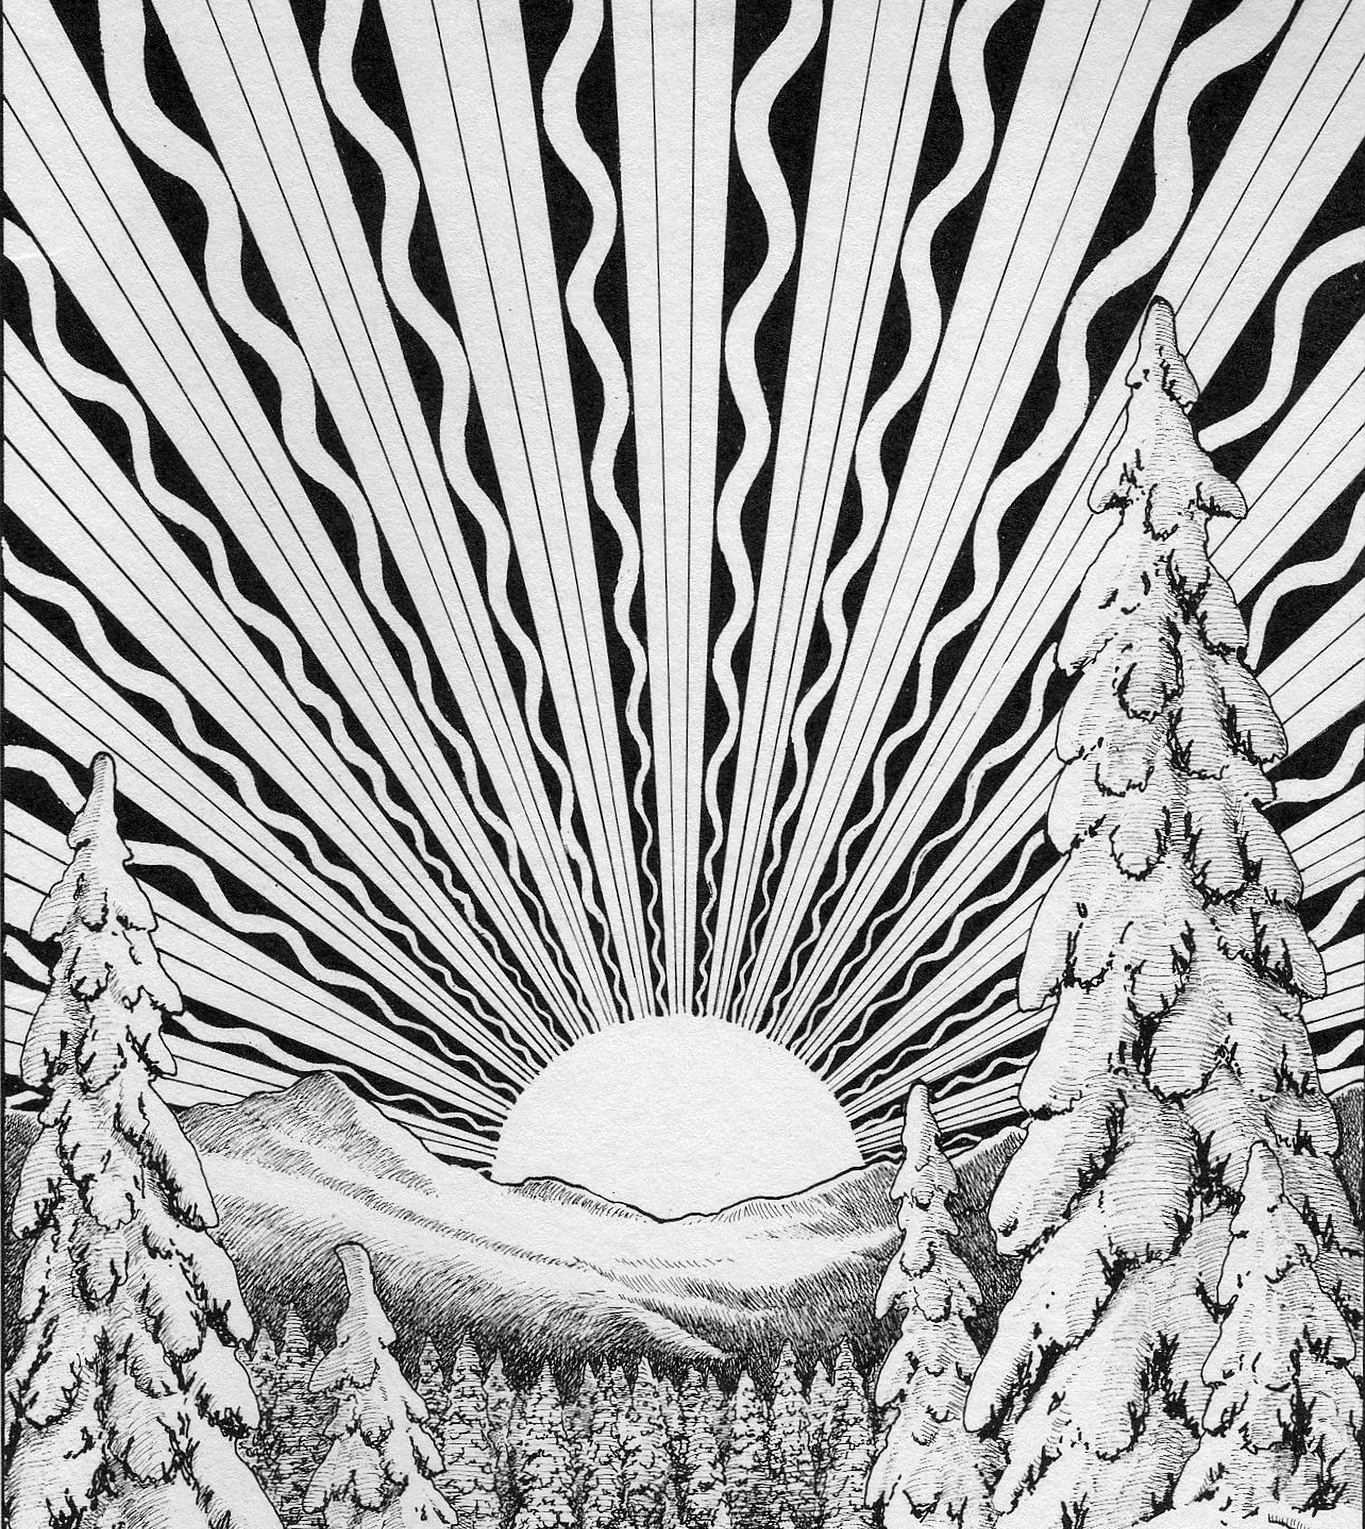 Image shows a stylised black and white drawing of the sun rising over a snow capped mountain and forest